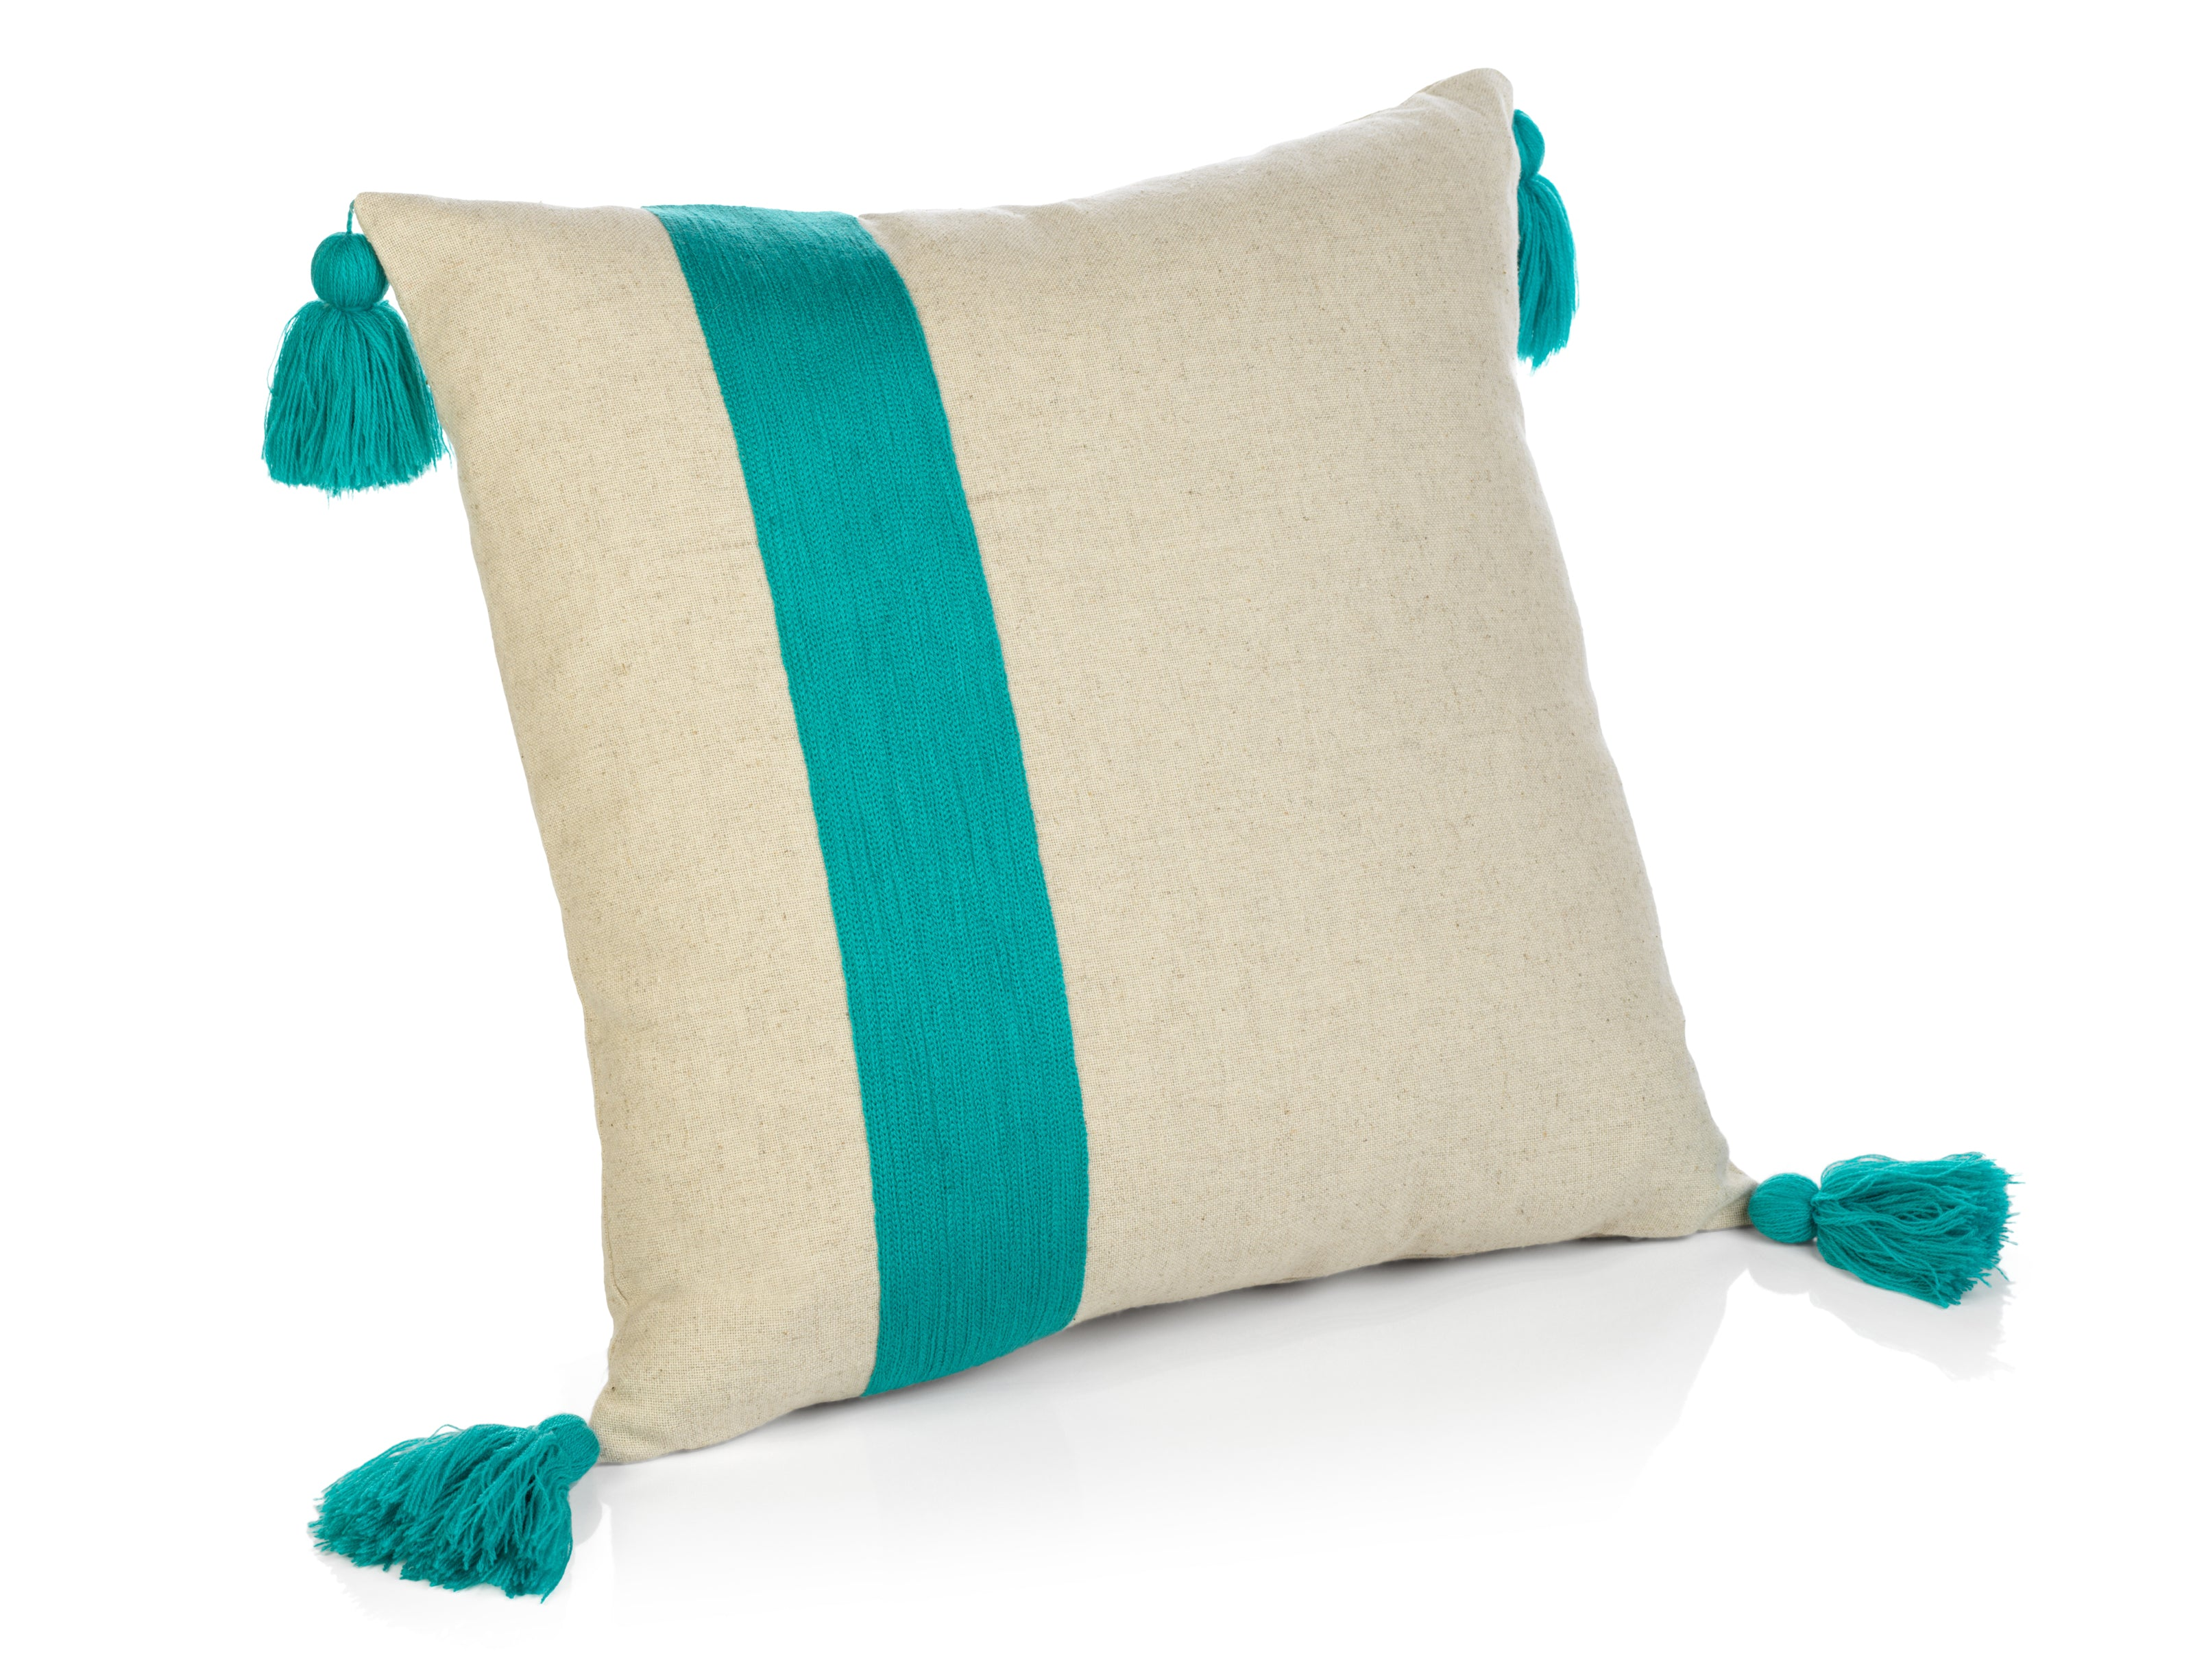 Polignano Embroidered Throw Pillow w/Tassels - Azure - CARLYLE AVENUE